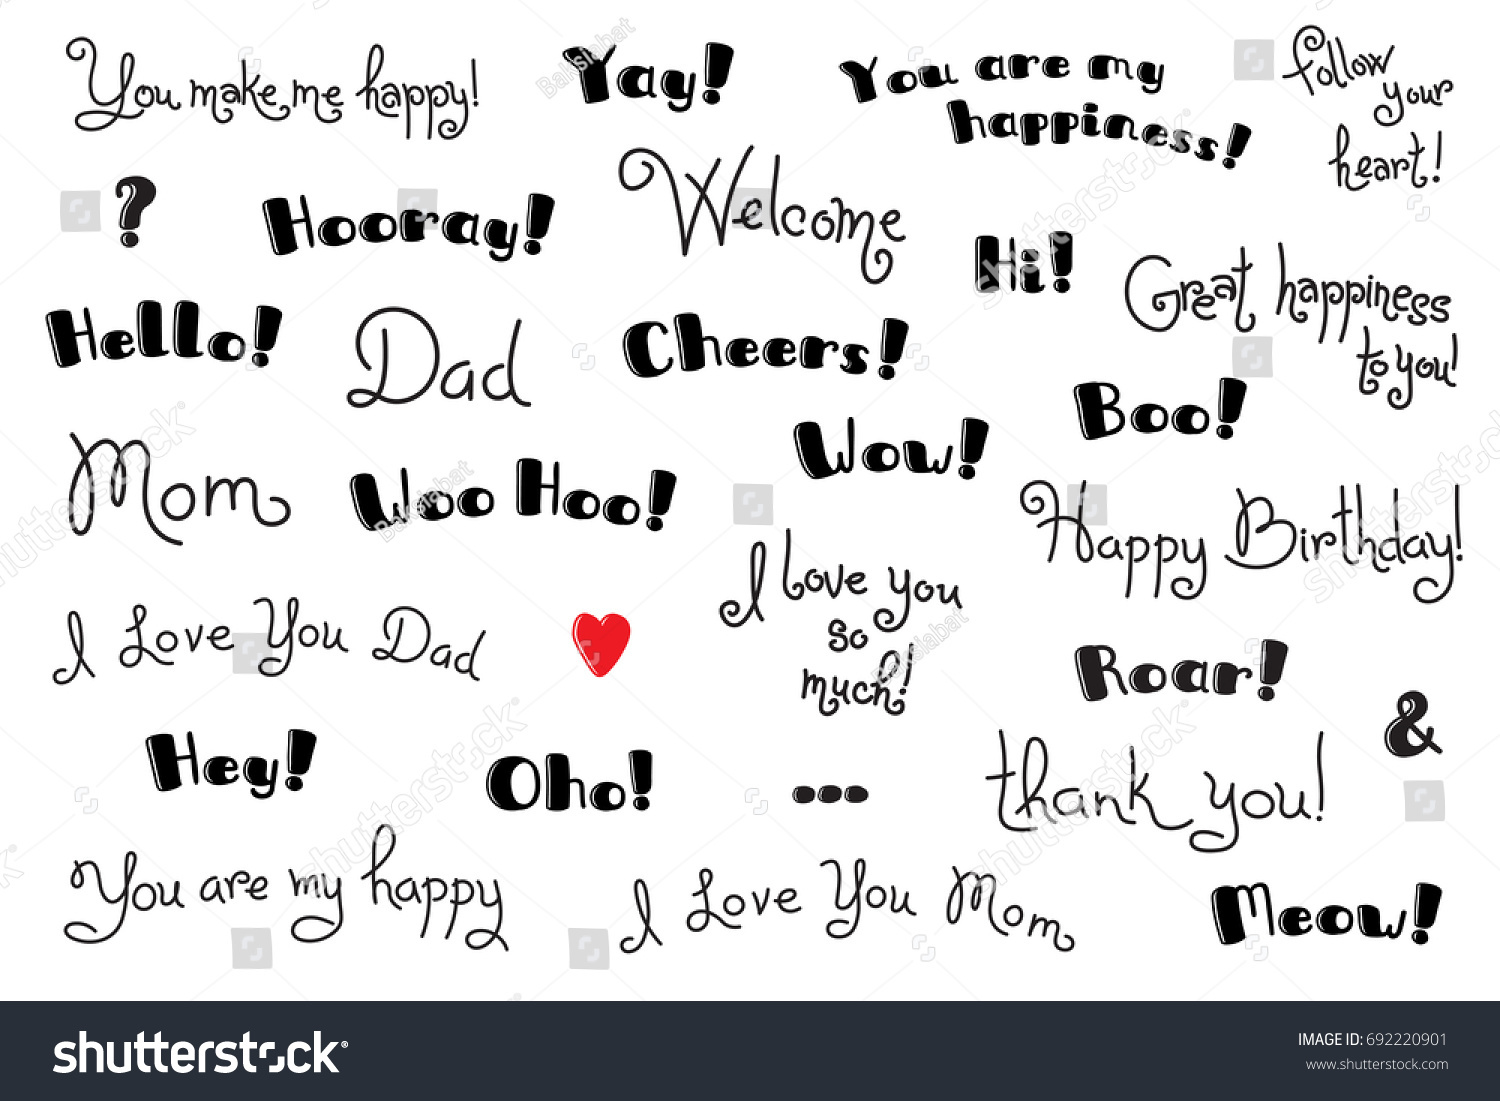 Phrases Interjections Exclamation Words Cover Poster Stock Vector